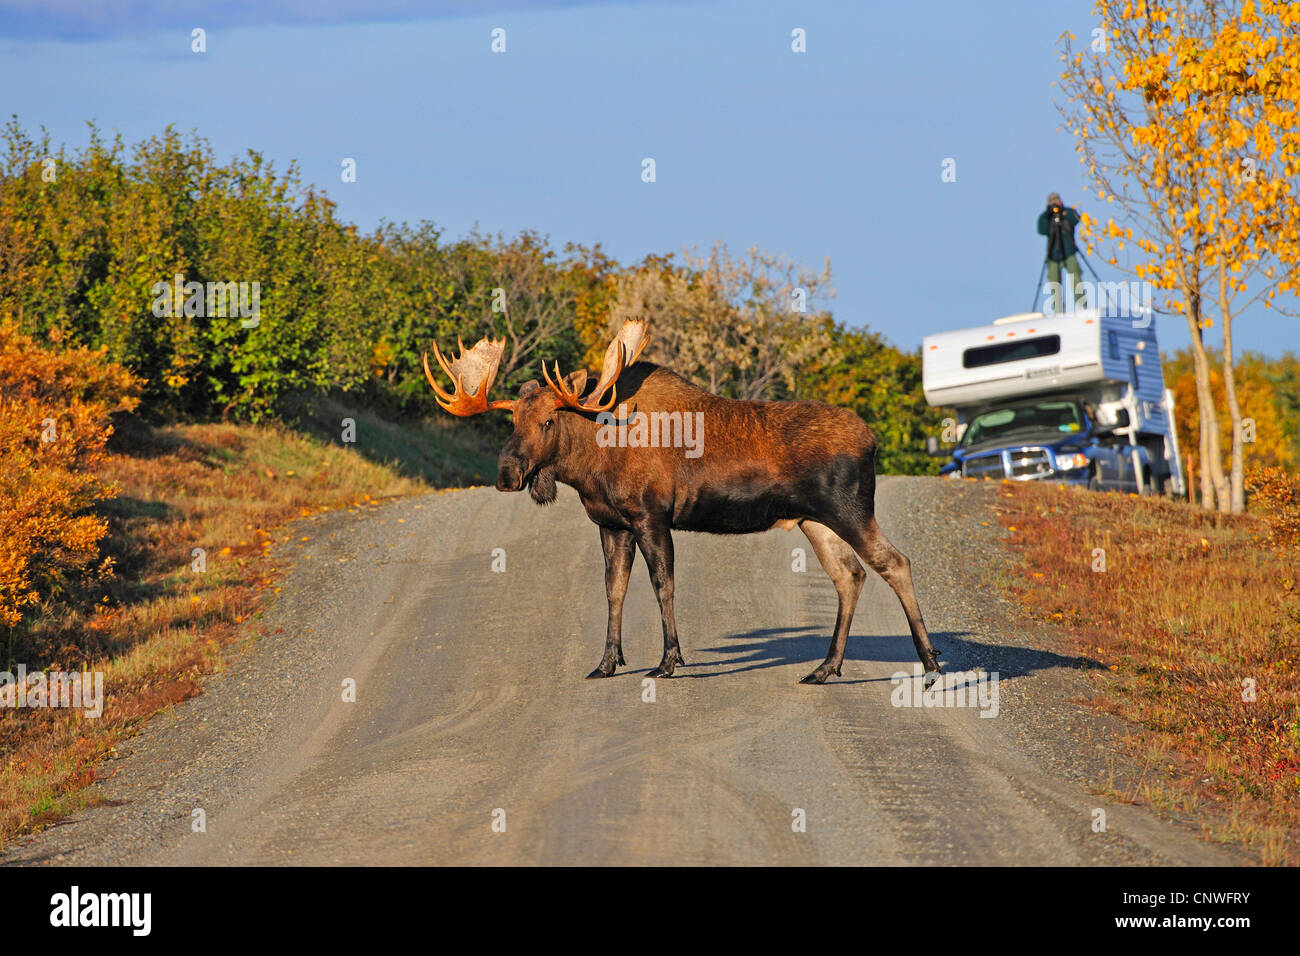 Alaska moose, Tundra moose, Yukon moose (Alces alces gigas), male crossing a street fotographer in the background, - Stock Image